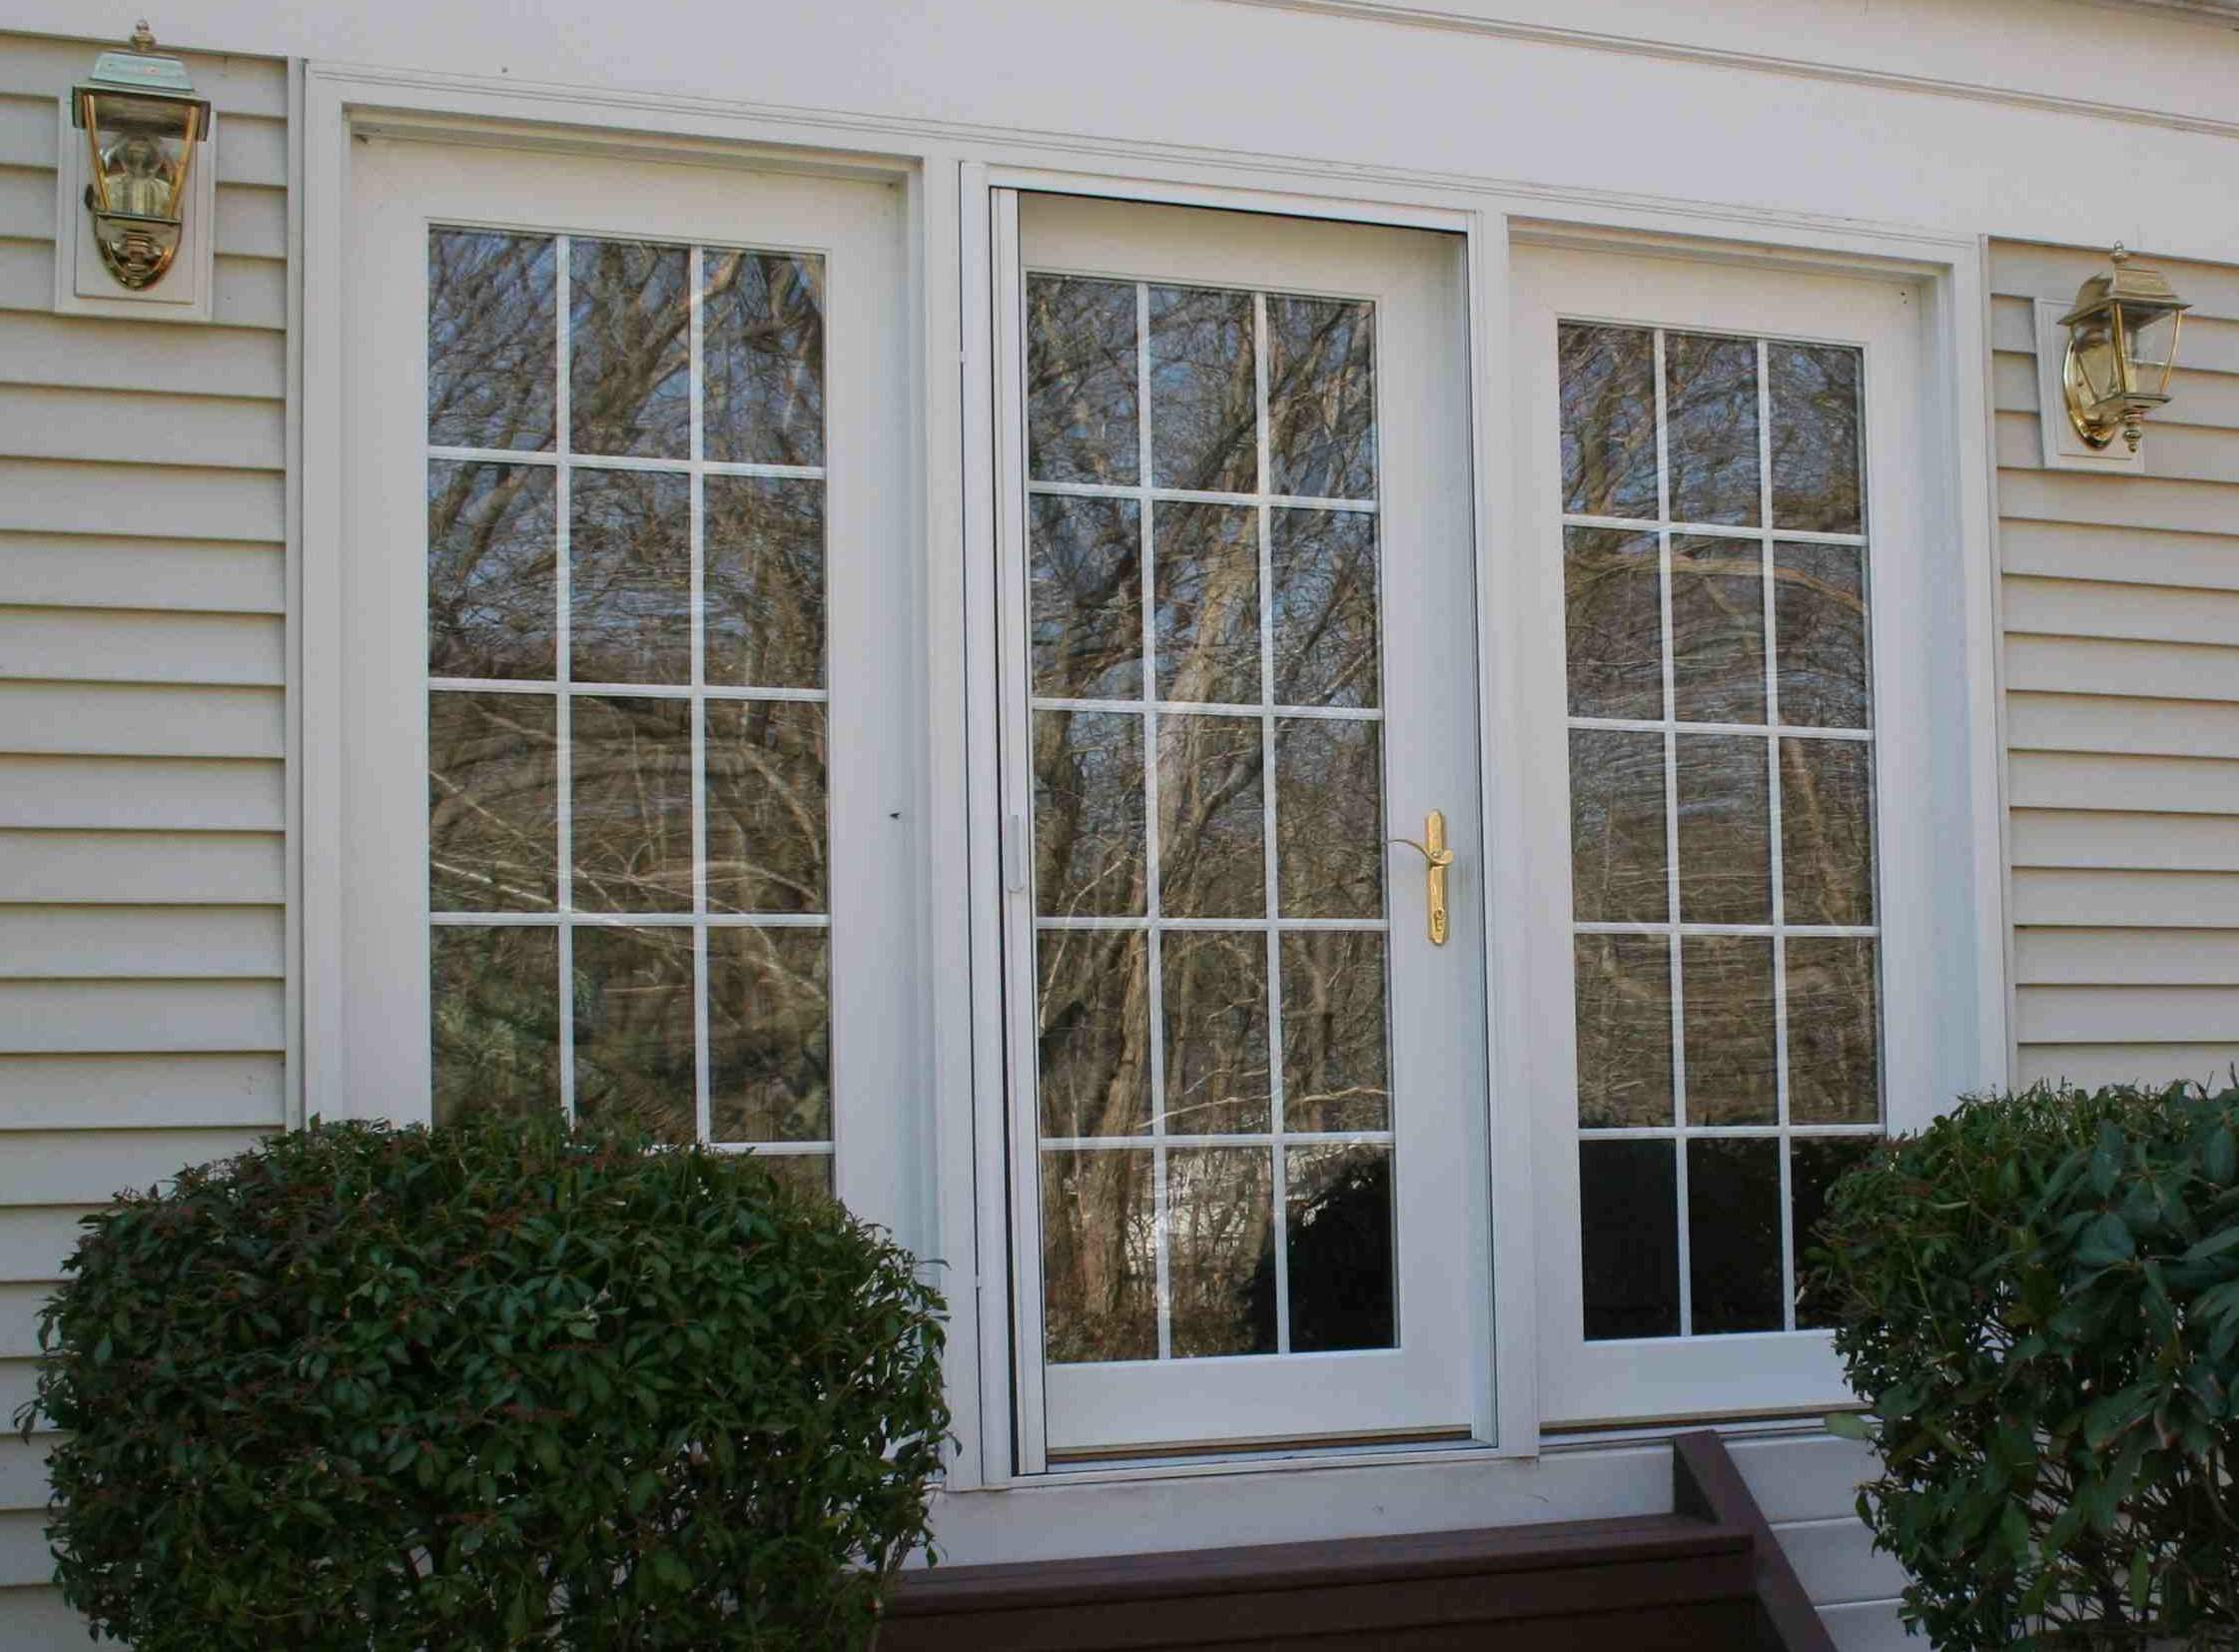 Charmant Since 1989 Royal Home Products Has Been Designing And Installing The  Highest Quality UPVC Replacement Windows And Fiberglass Entry Doors.